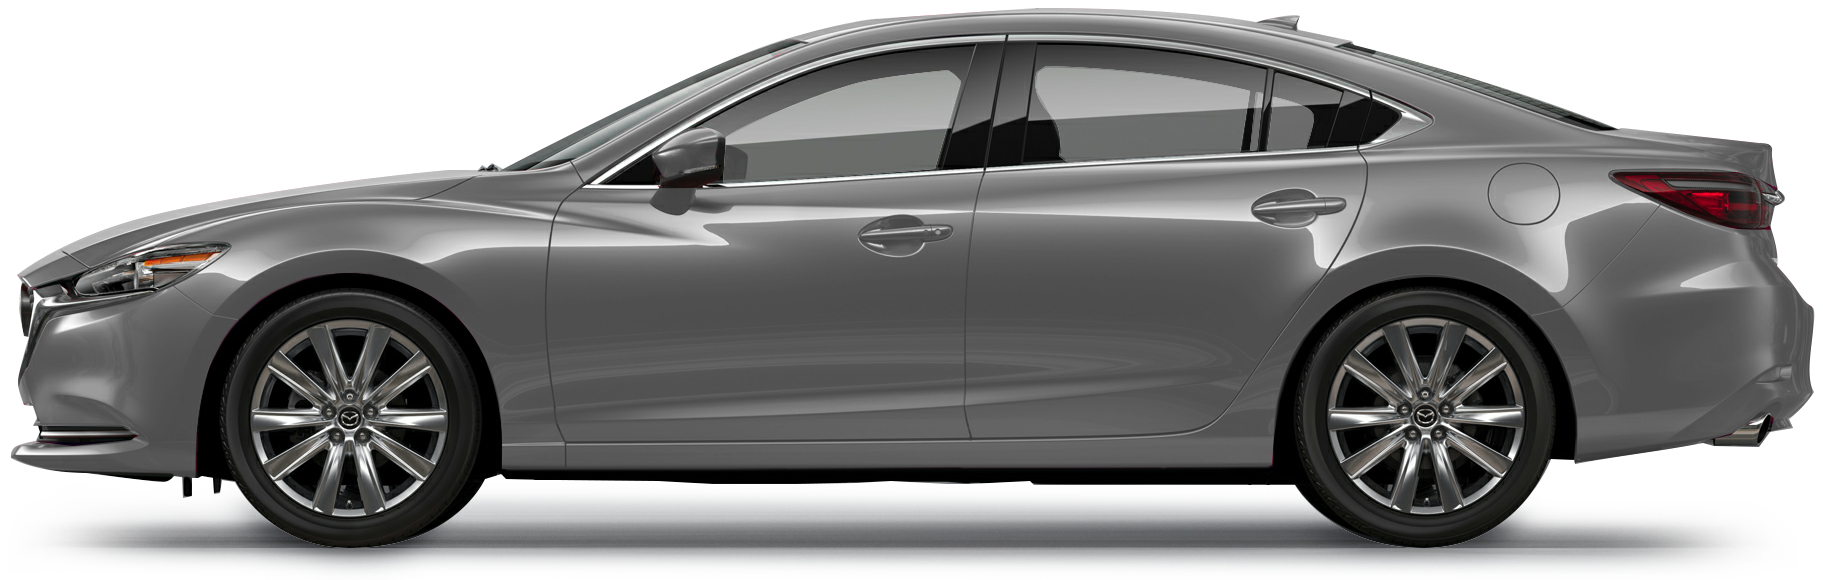 http://images.dealer.com/ddc/vehicles/2019/Mazda/Mazda6/Sedan/trim_Grand_Touring_68eea7/perspective/side-left/2019_24.png